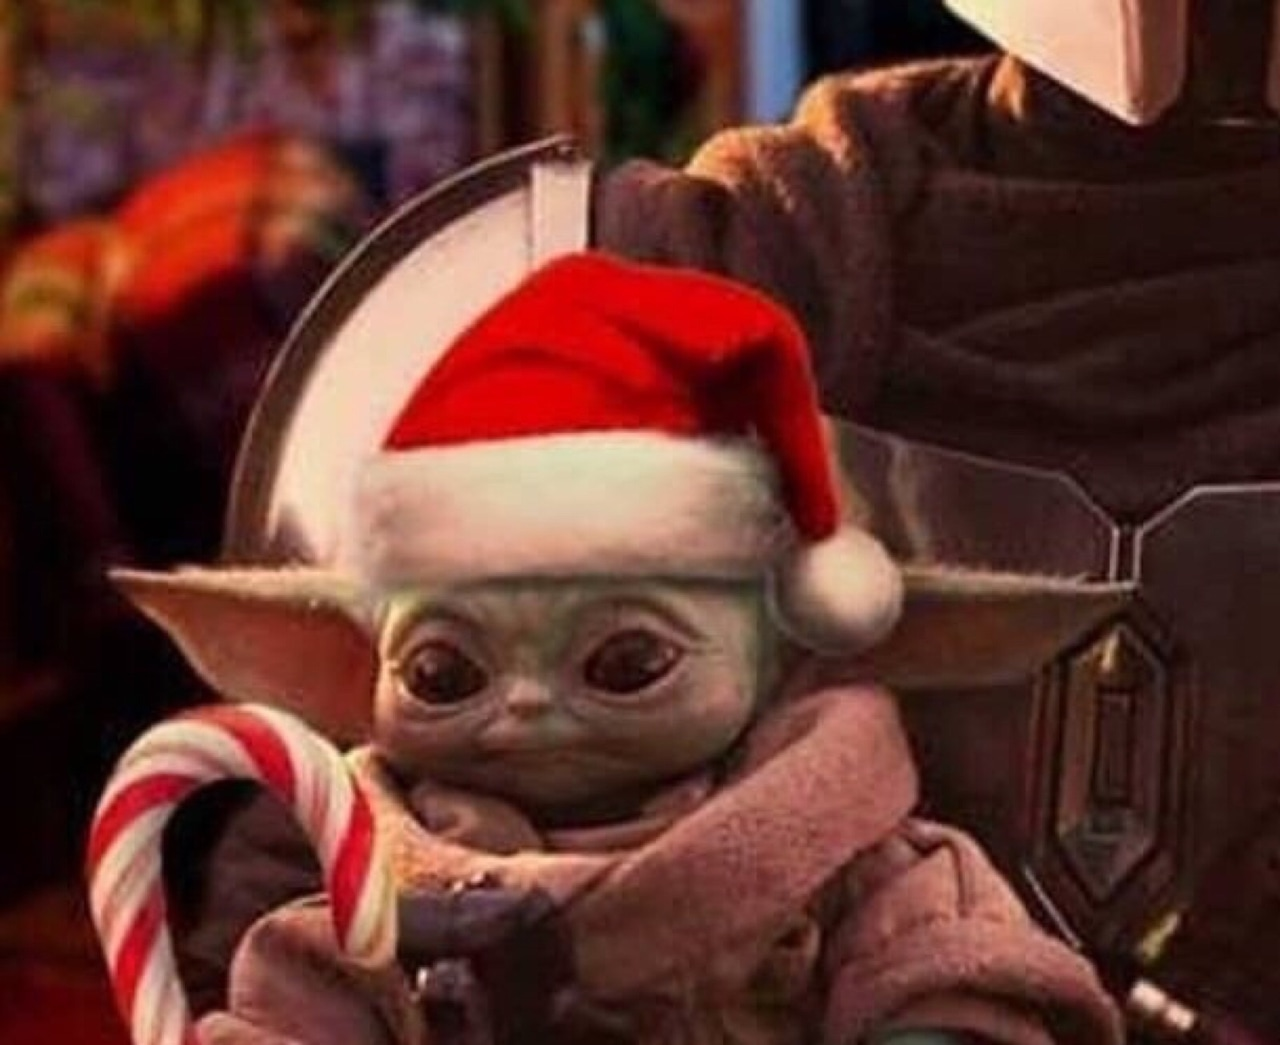 """Christmas """"yoda"""" discovered by $$ on We Heart It"""